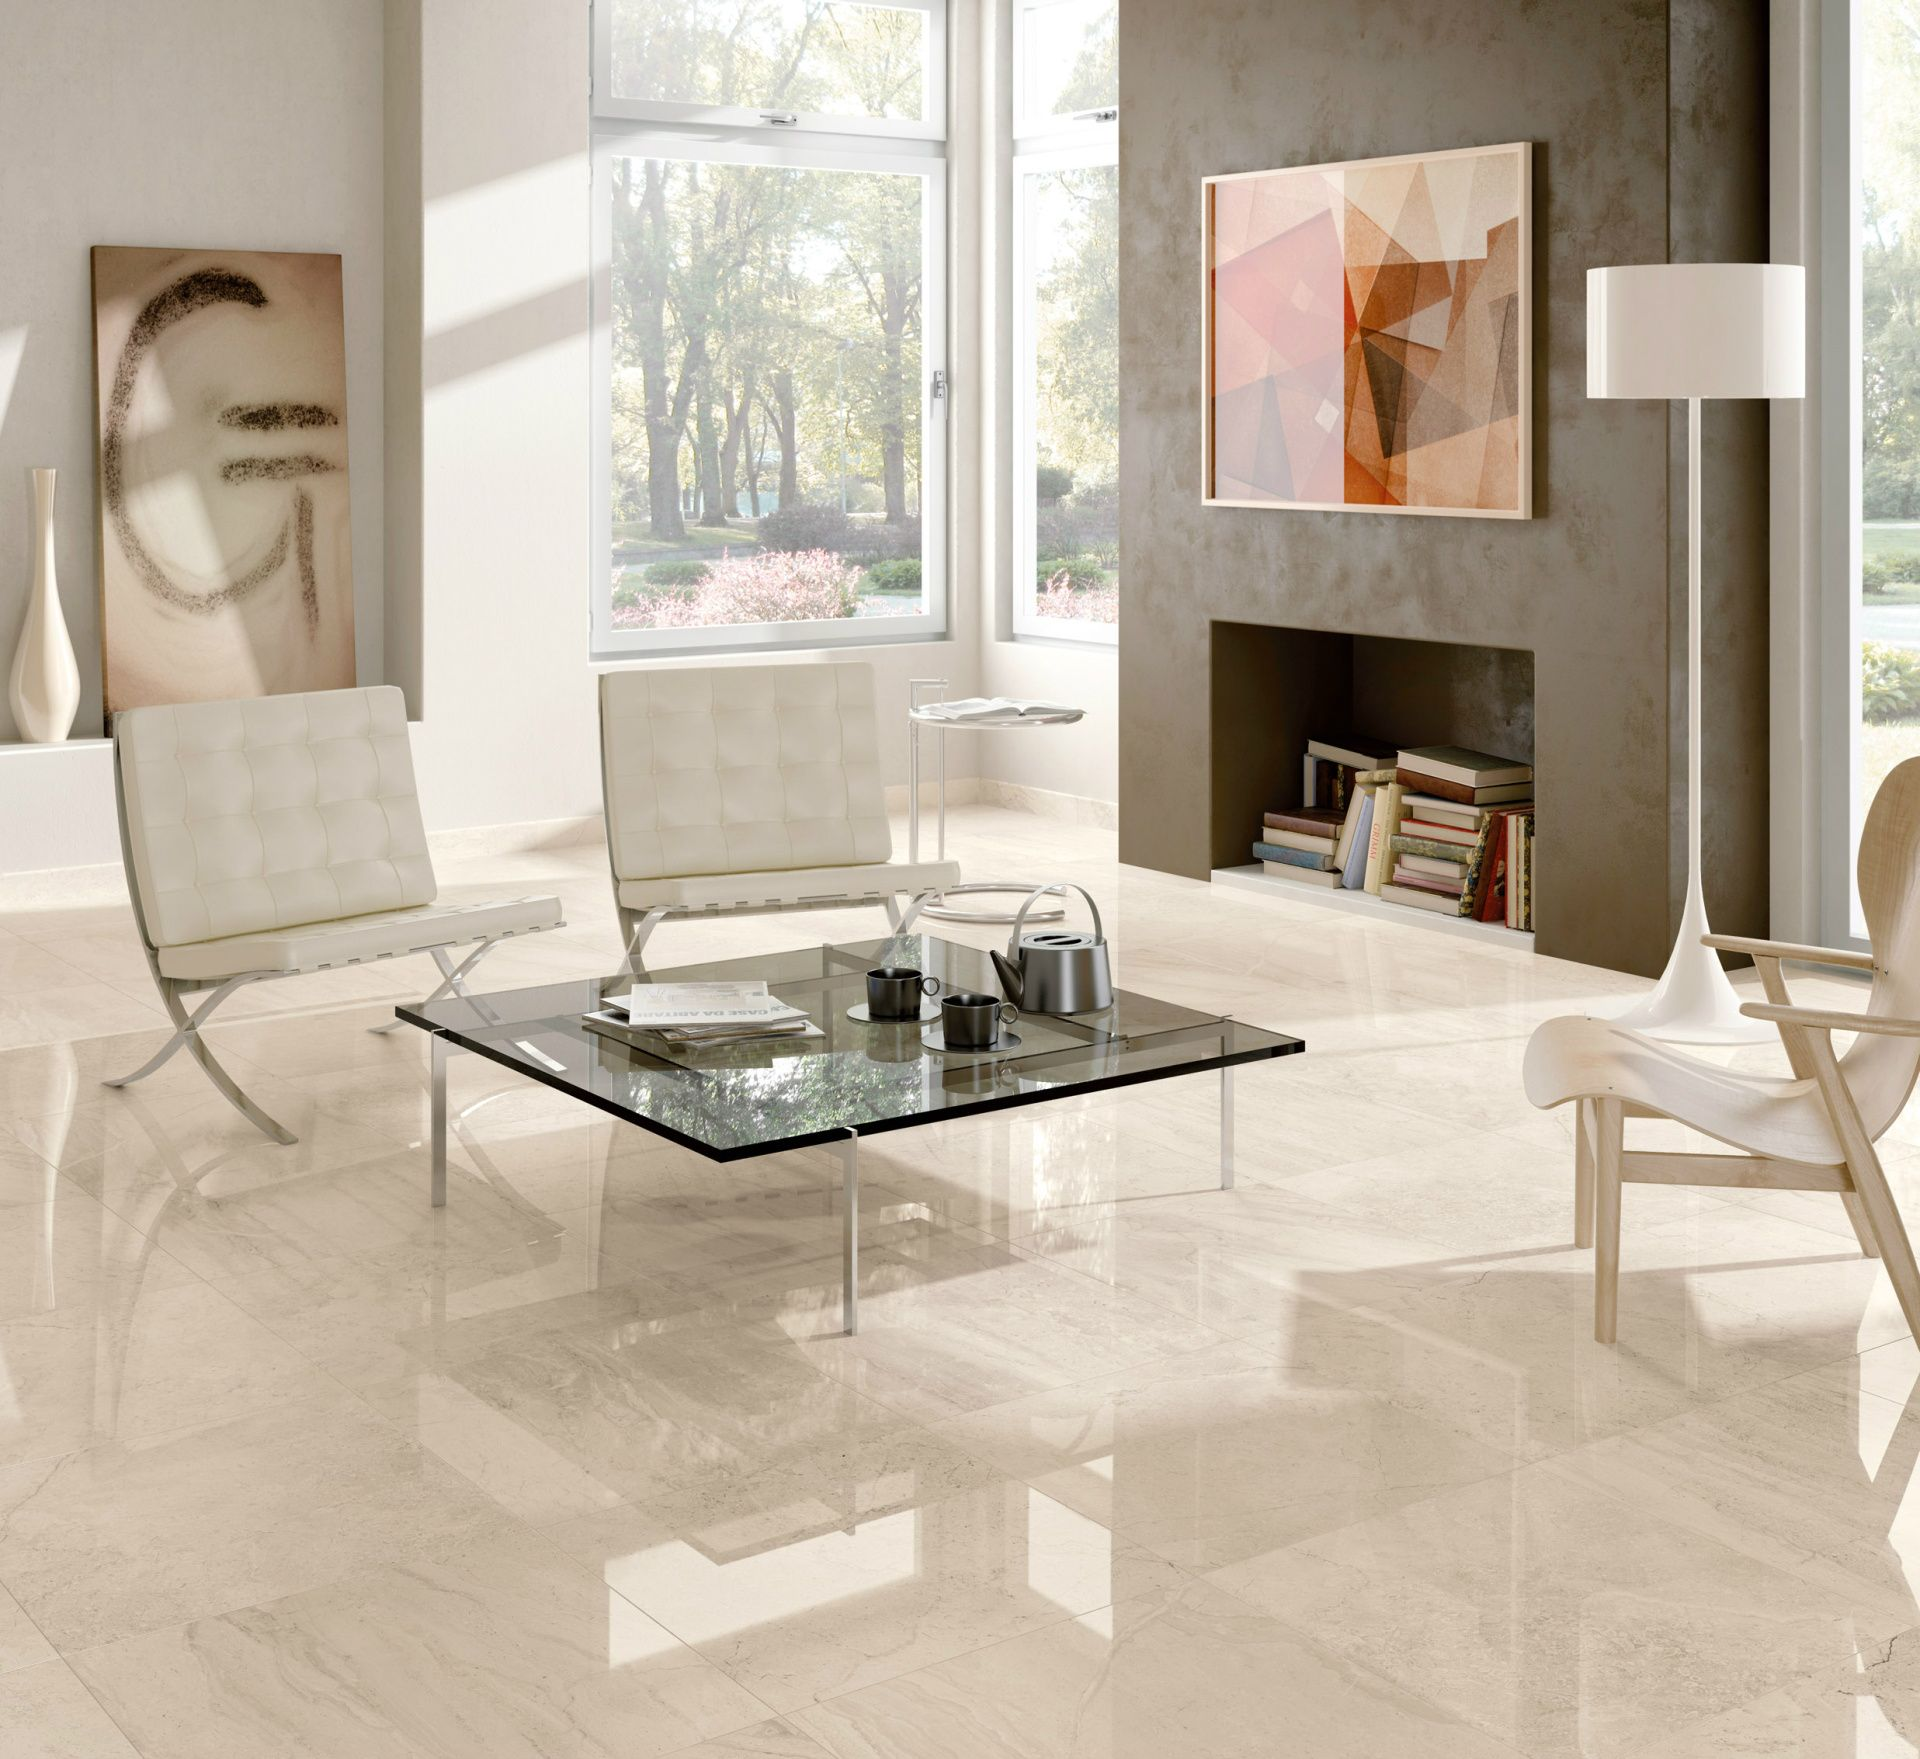 Minoli gotha floor tiles gotha quarz lux 60 x 60 cm from the gotha is one of the stunning marble look collections at minoli luxurious beige marble effect tiles for an environment totally marble effect dailygadgetfo Gallery